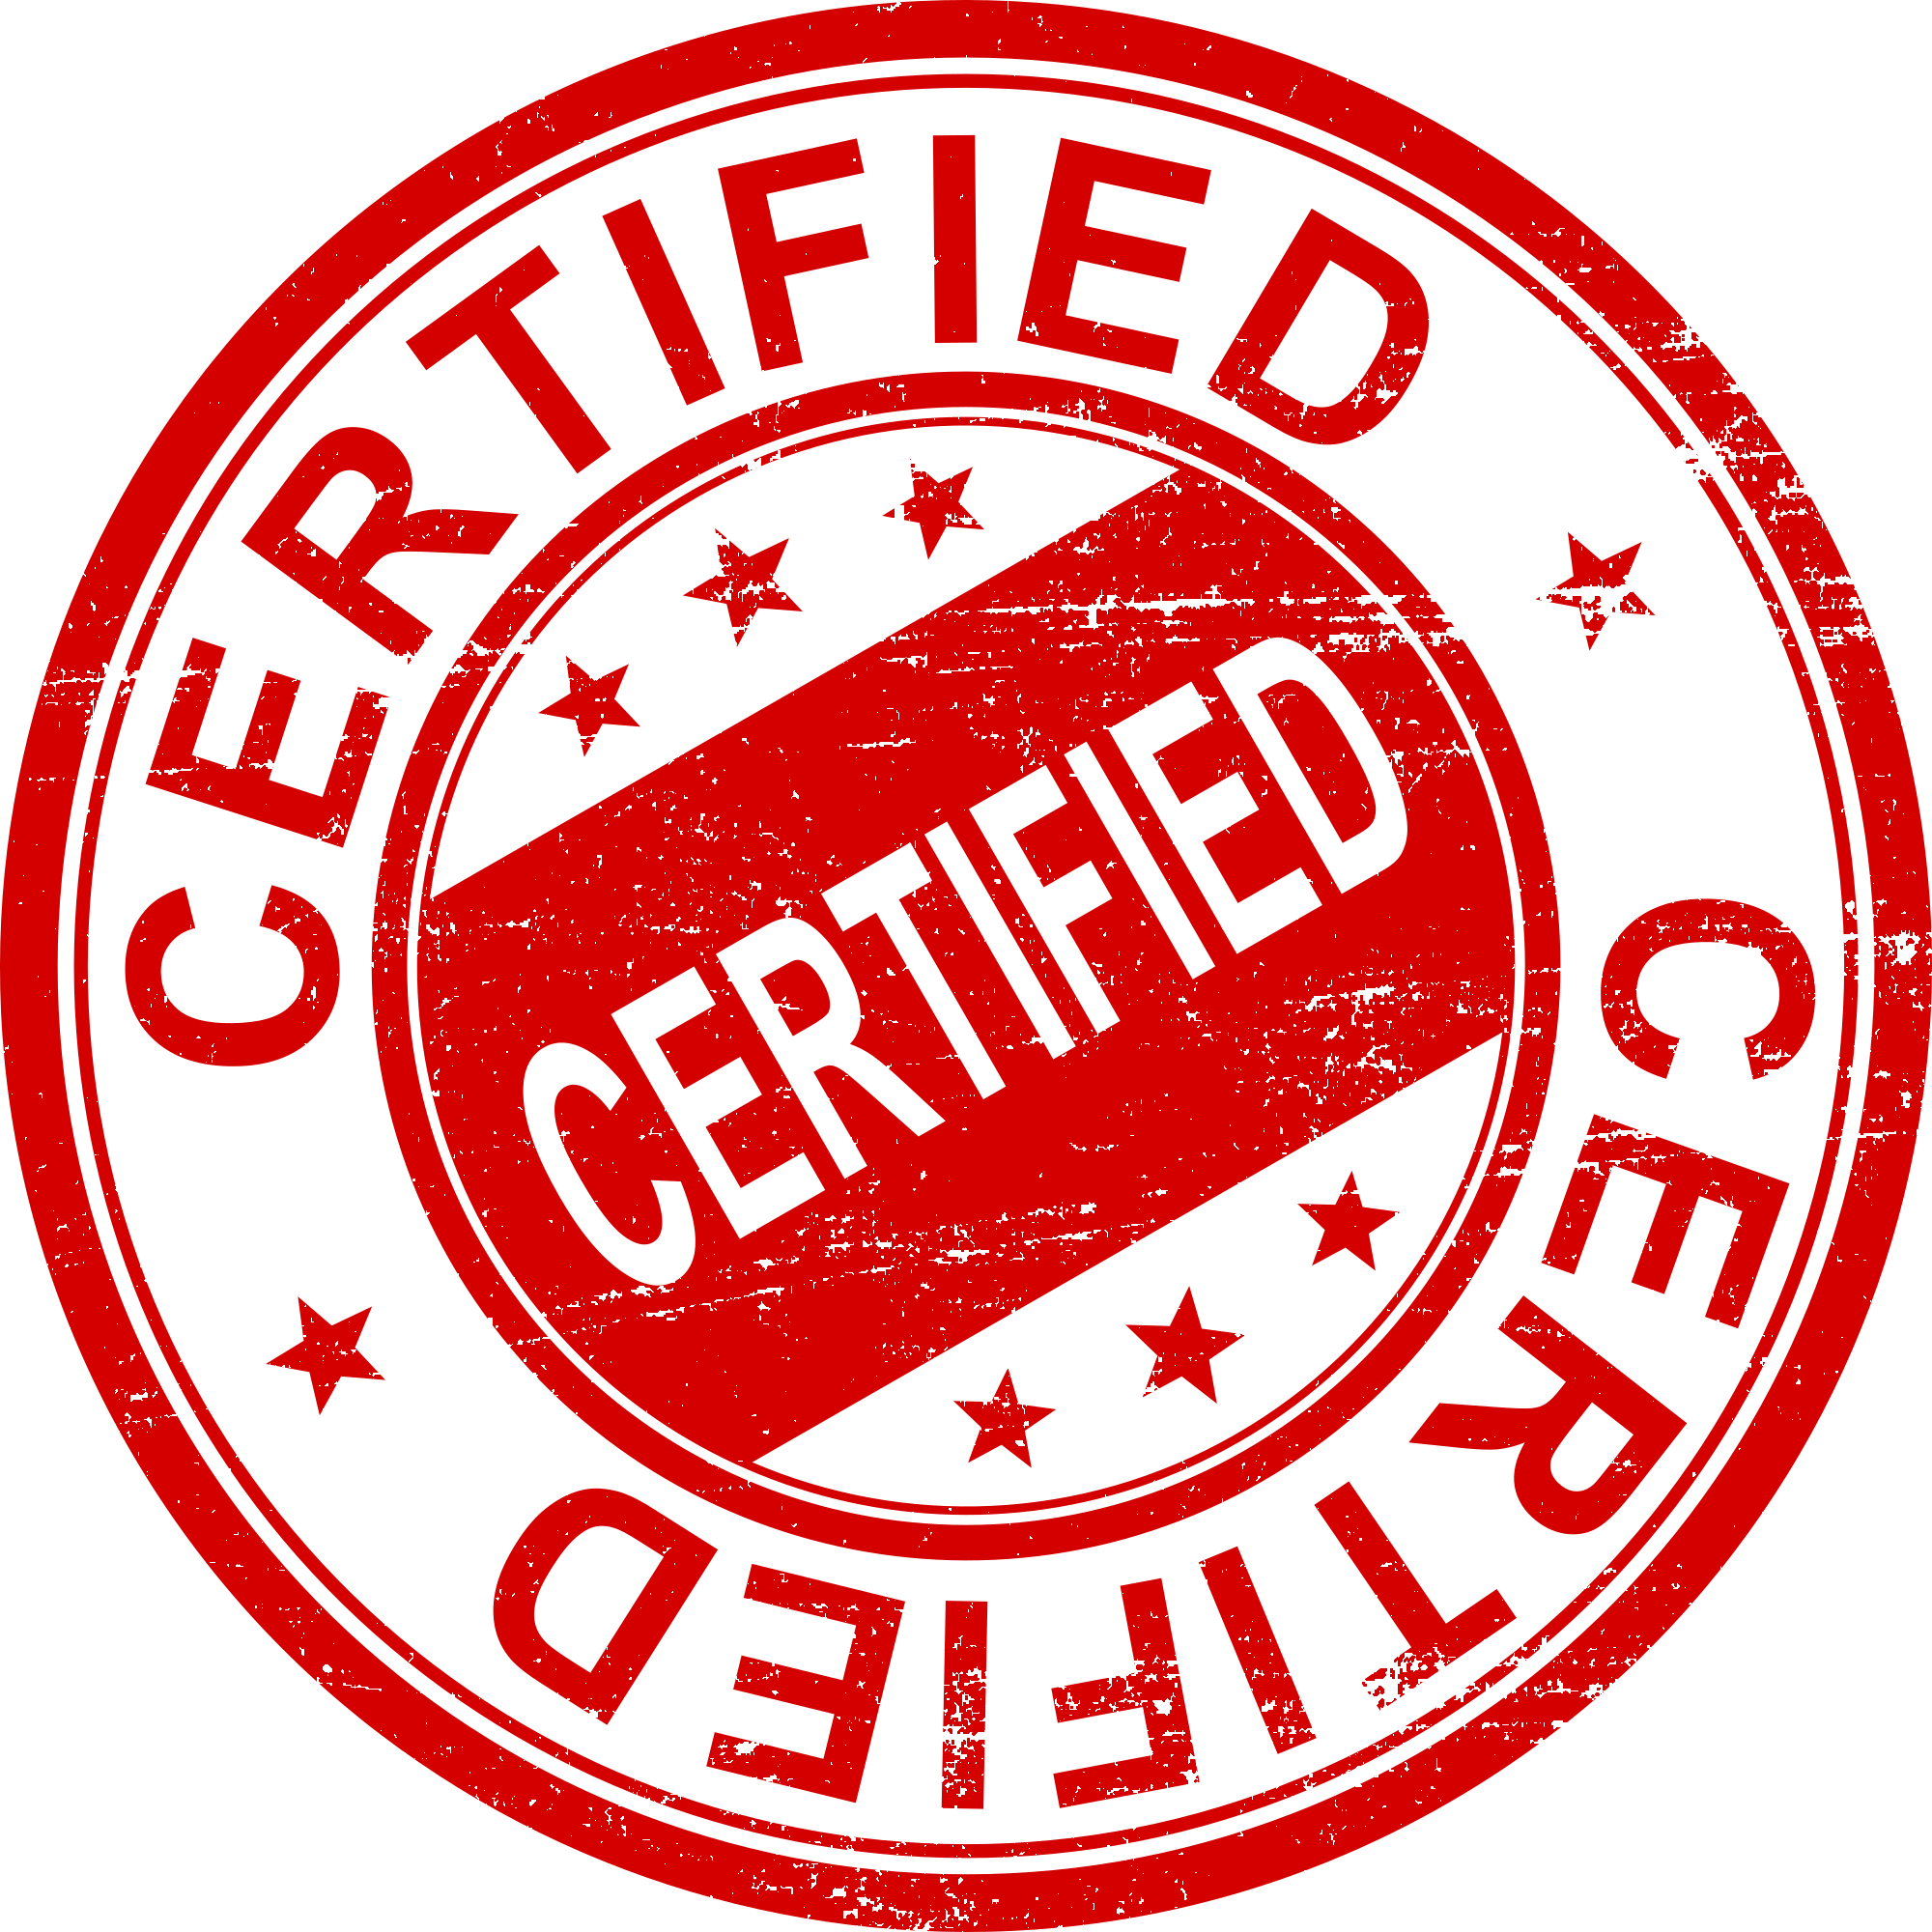 Certified Stamp Png & Free Certified Stamp.png Transparent Images.